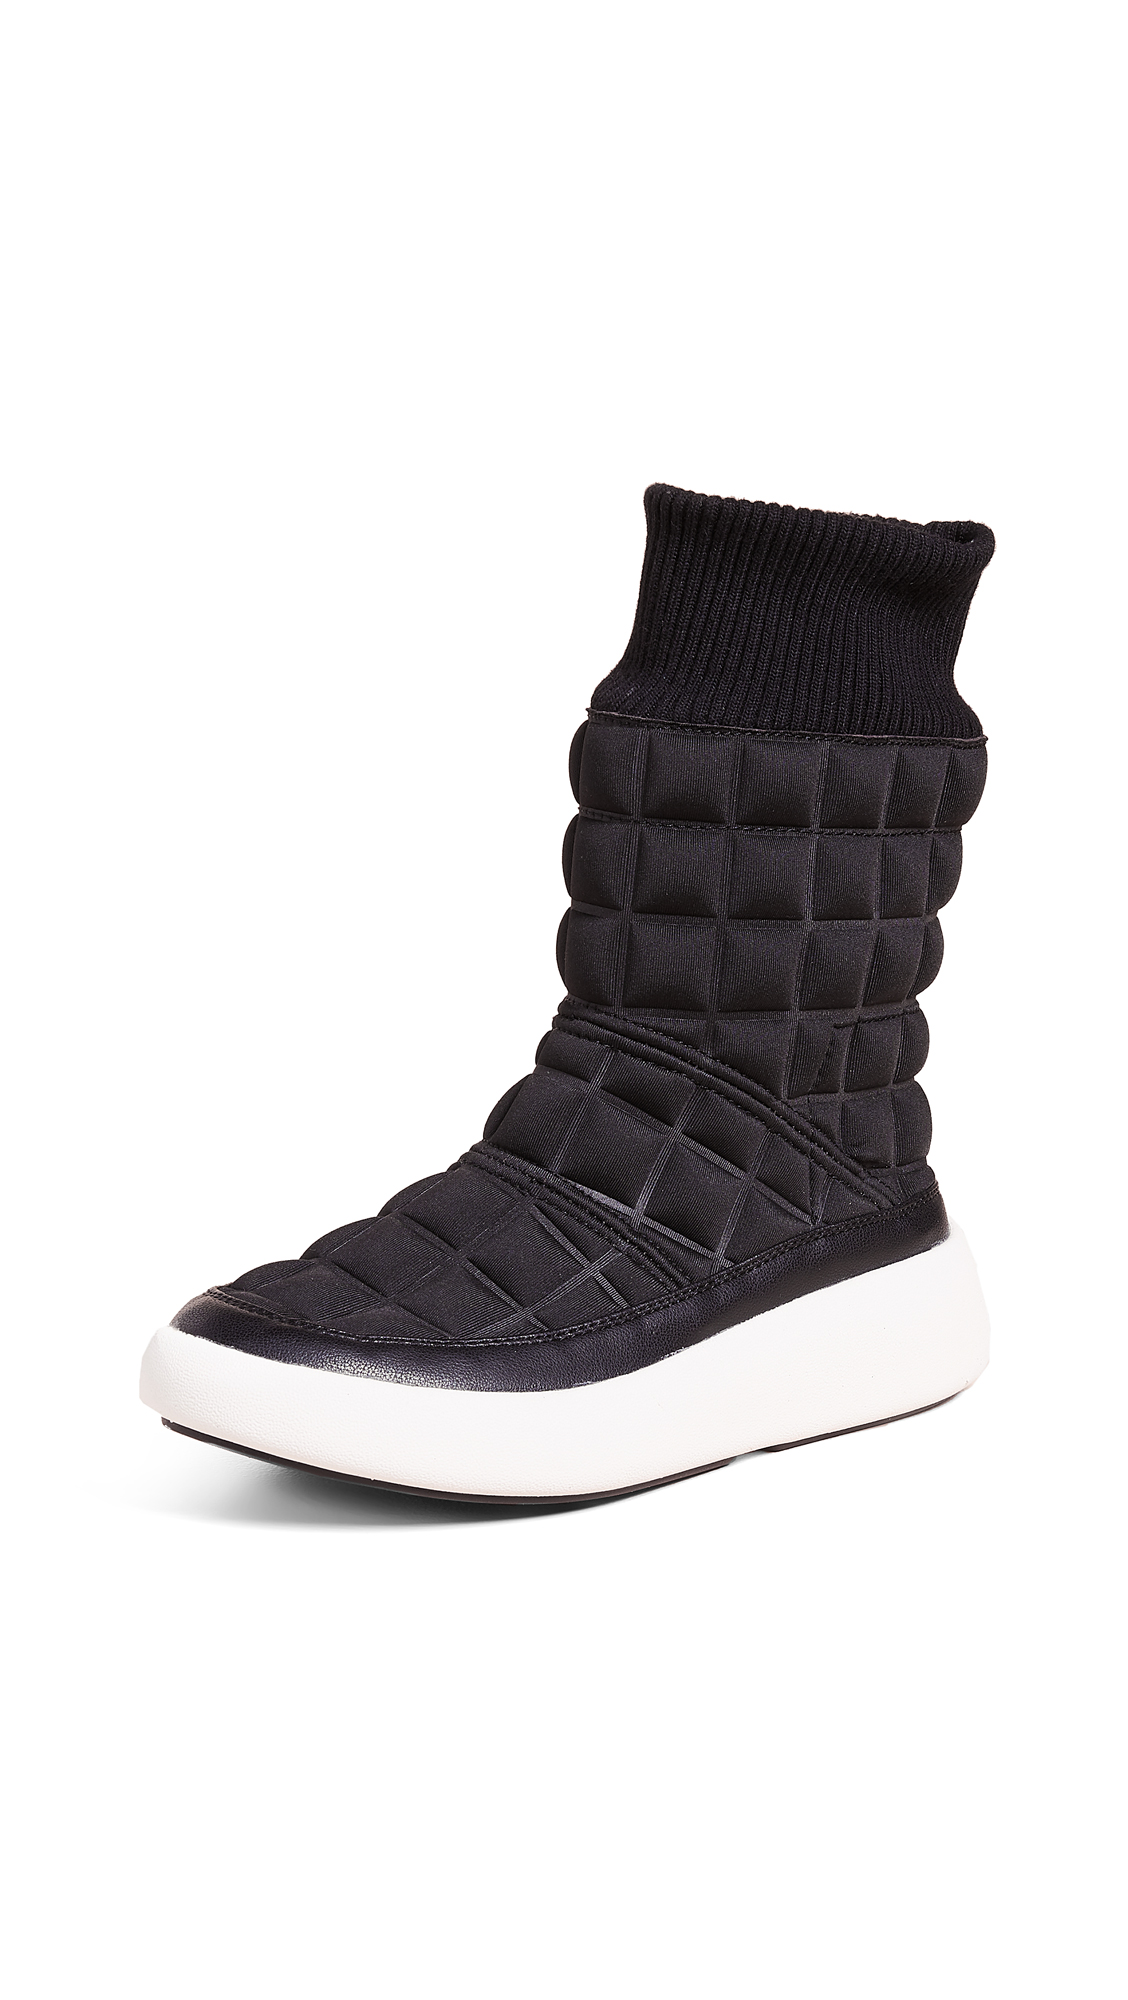 United Nude Bo Bubble Sneaker Boots - Black